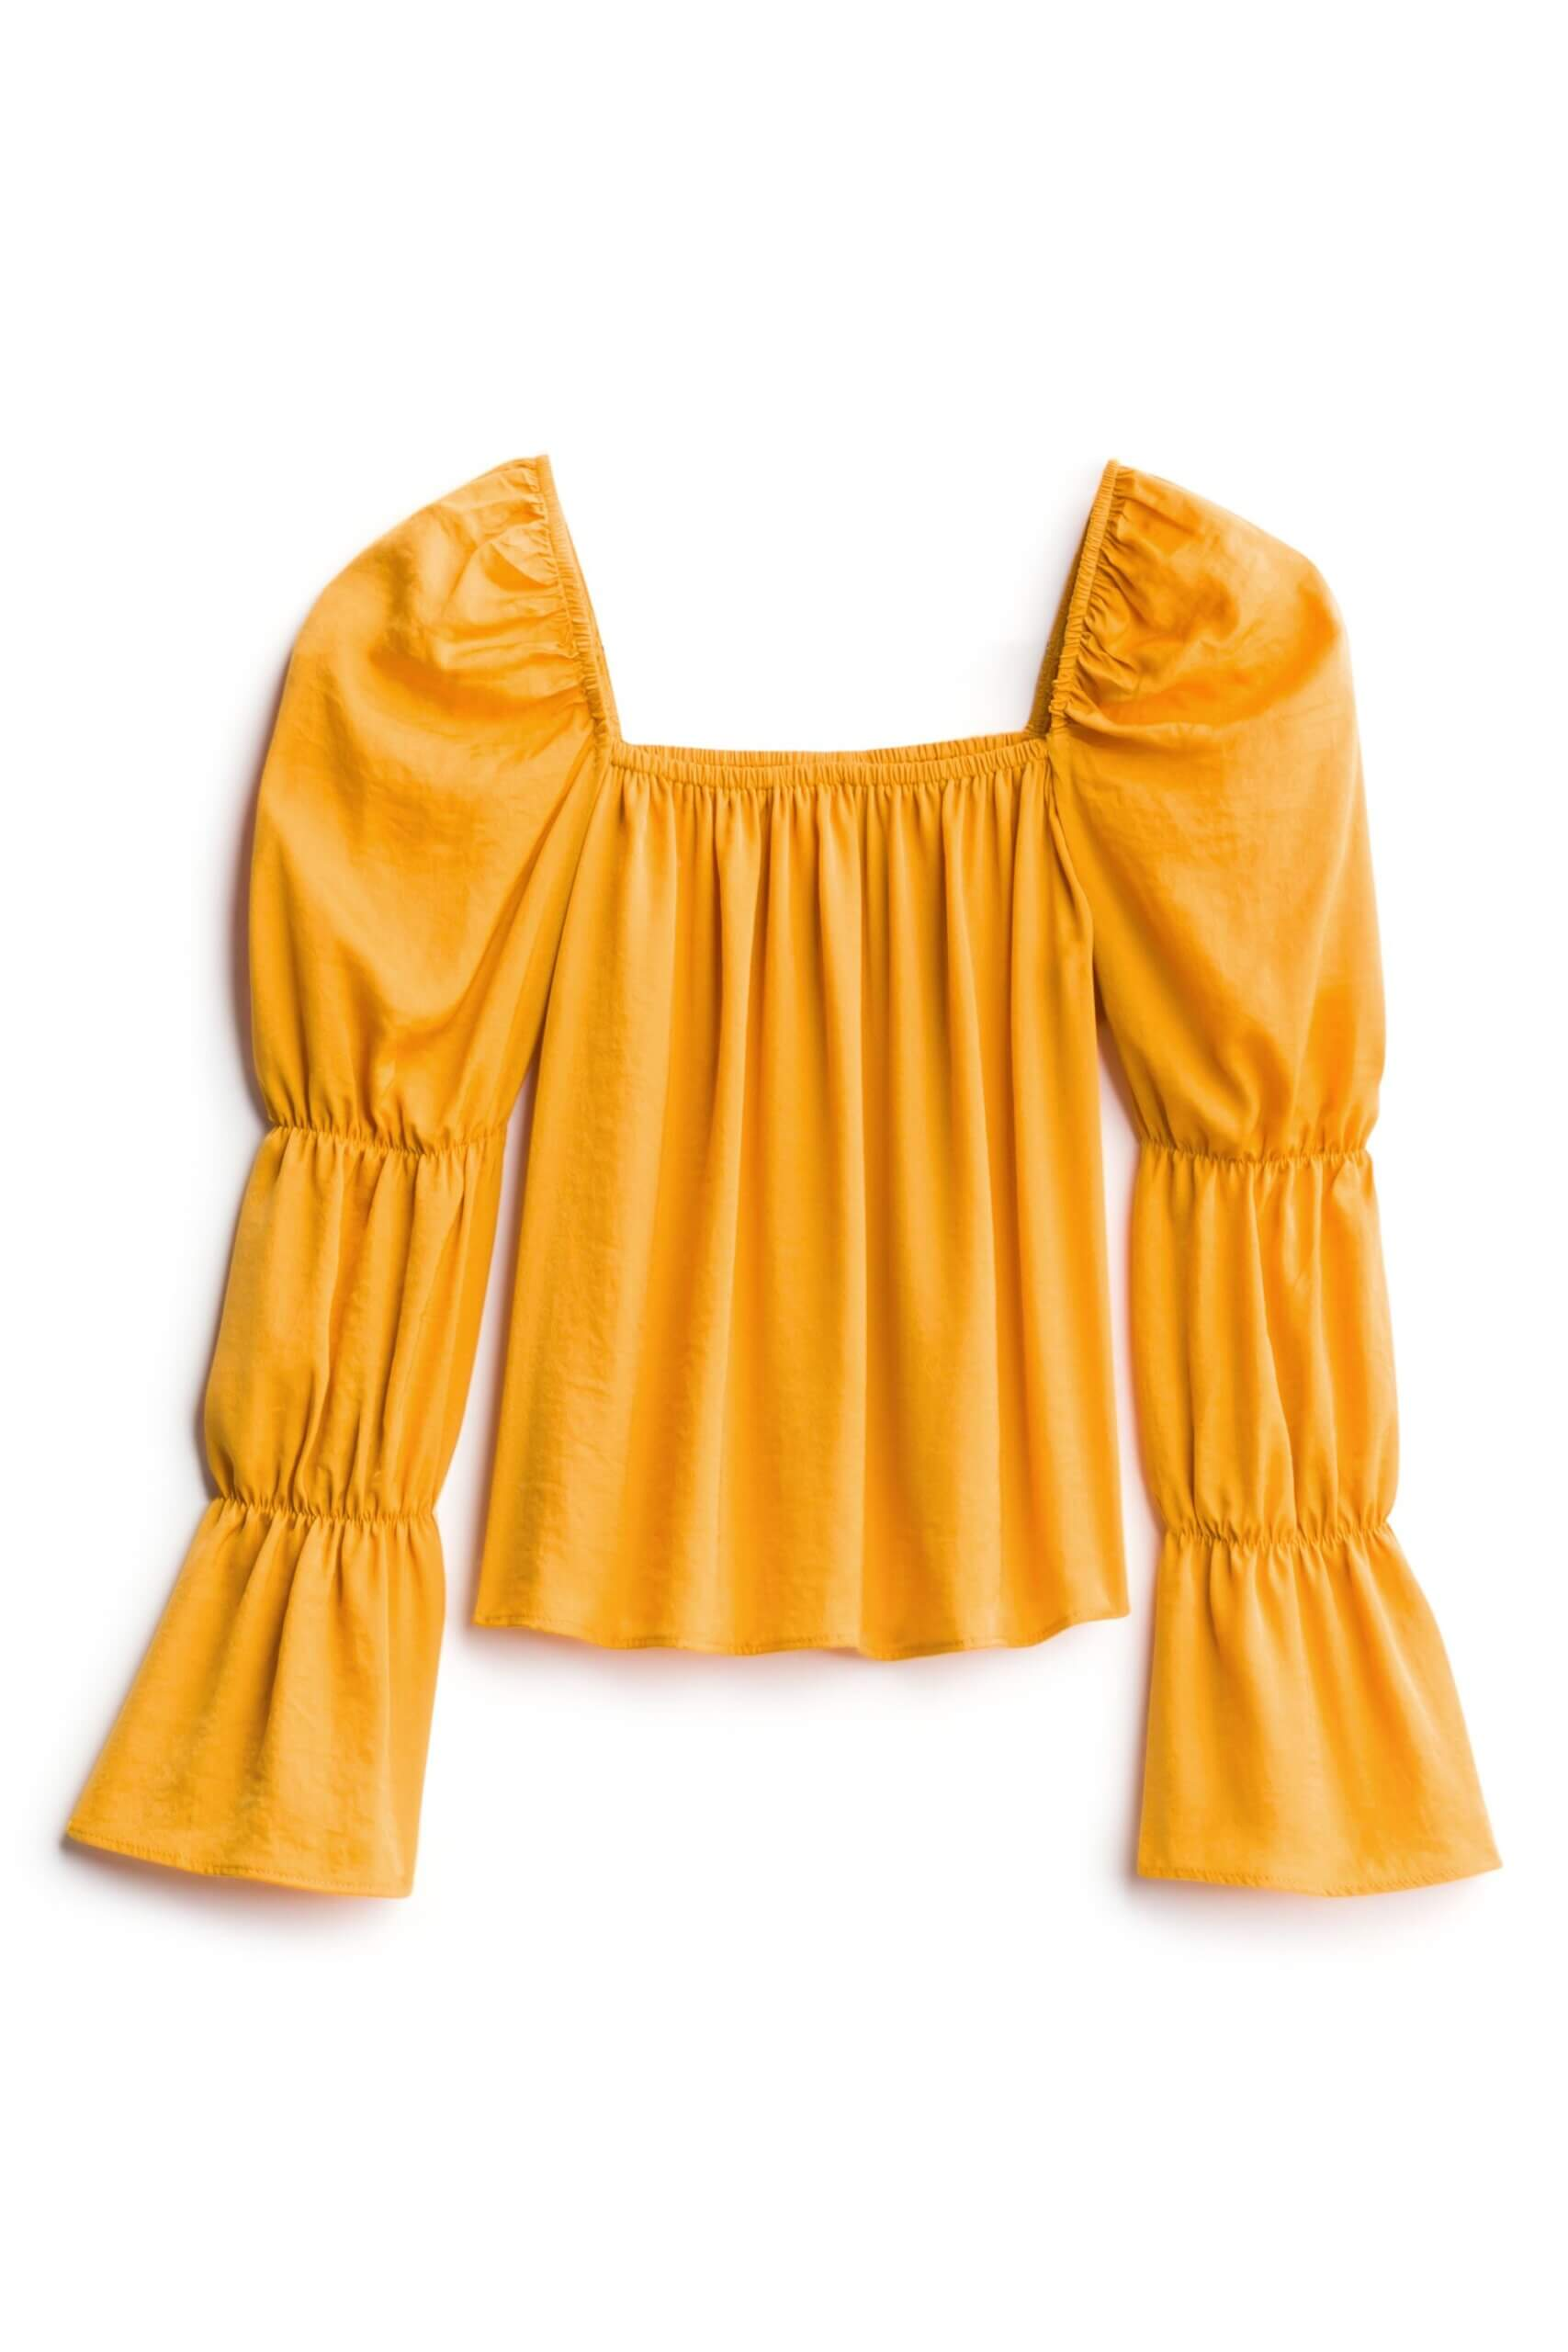 Stitch Fix Women's Summer 2021 Trends featuring mustard yellow long-sleeve blouse with tiered sleeves.